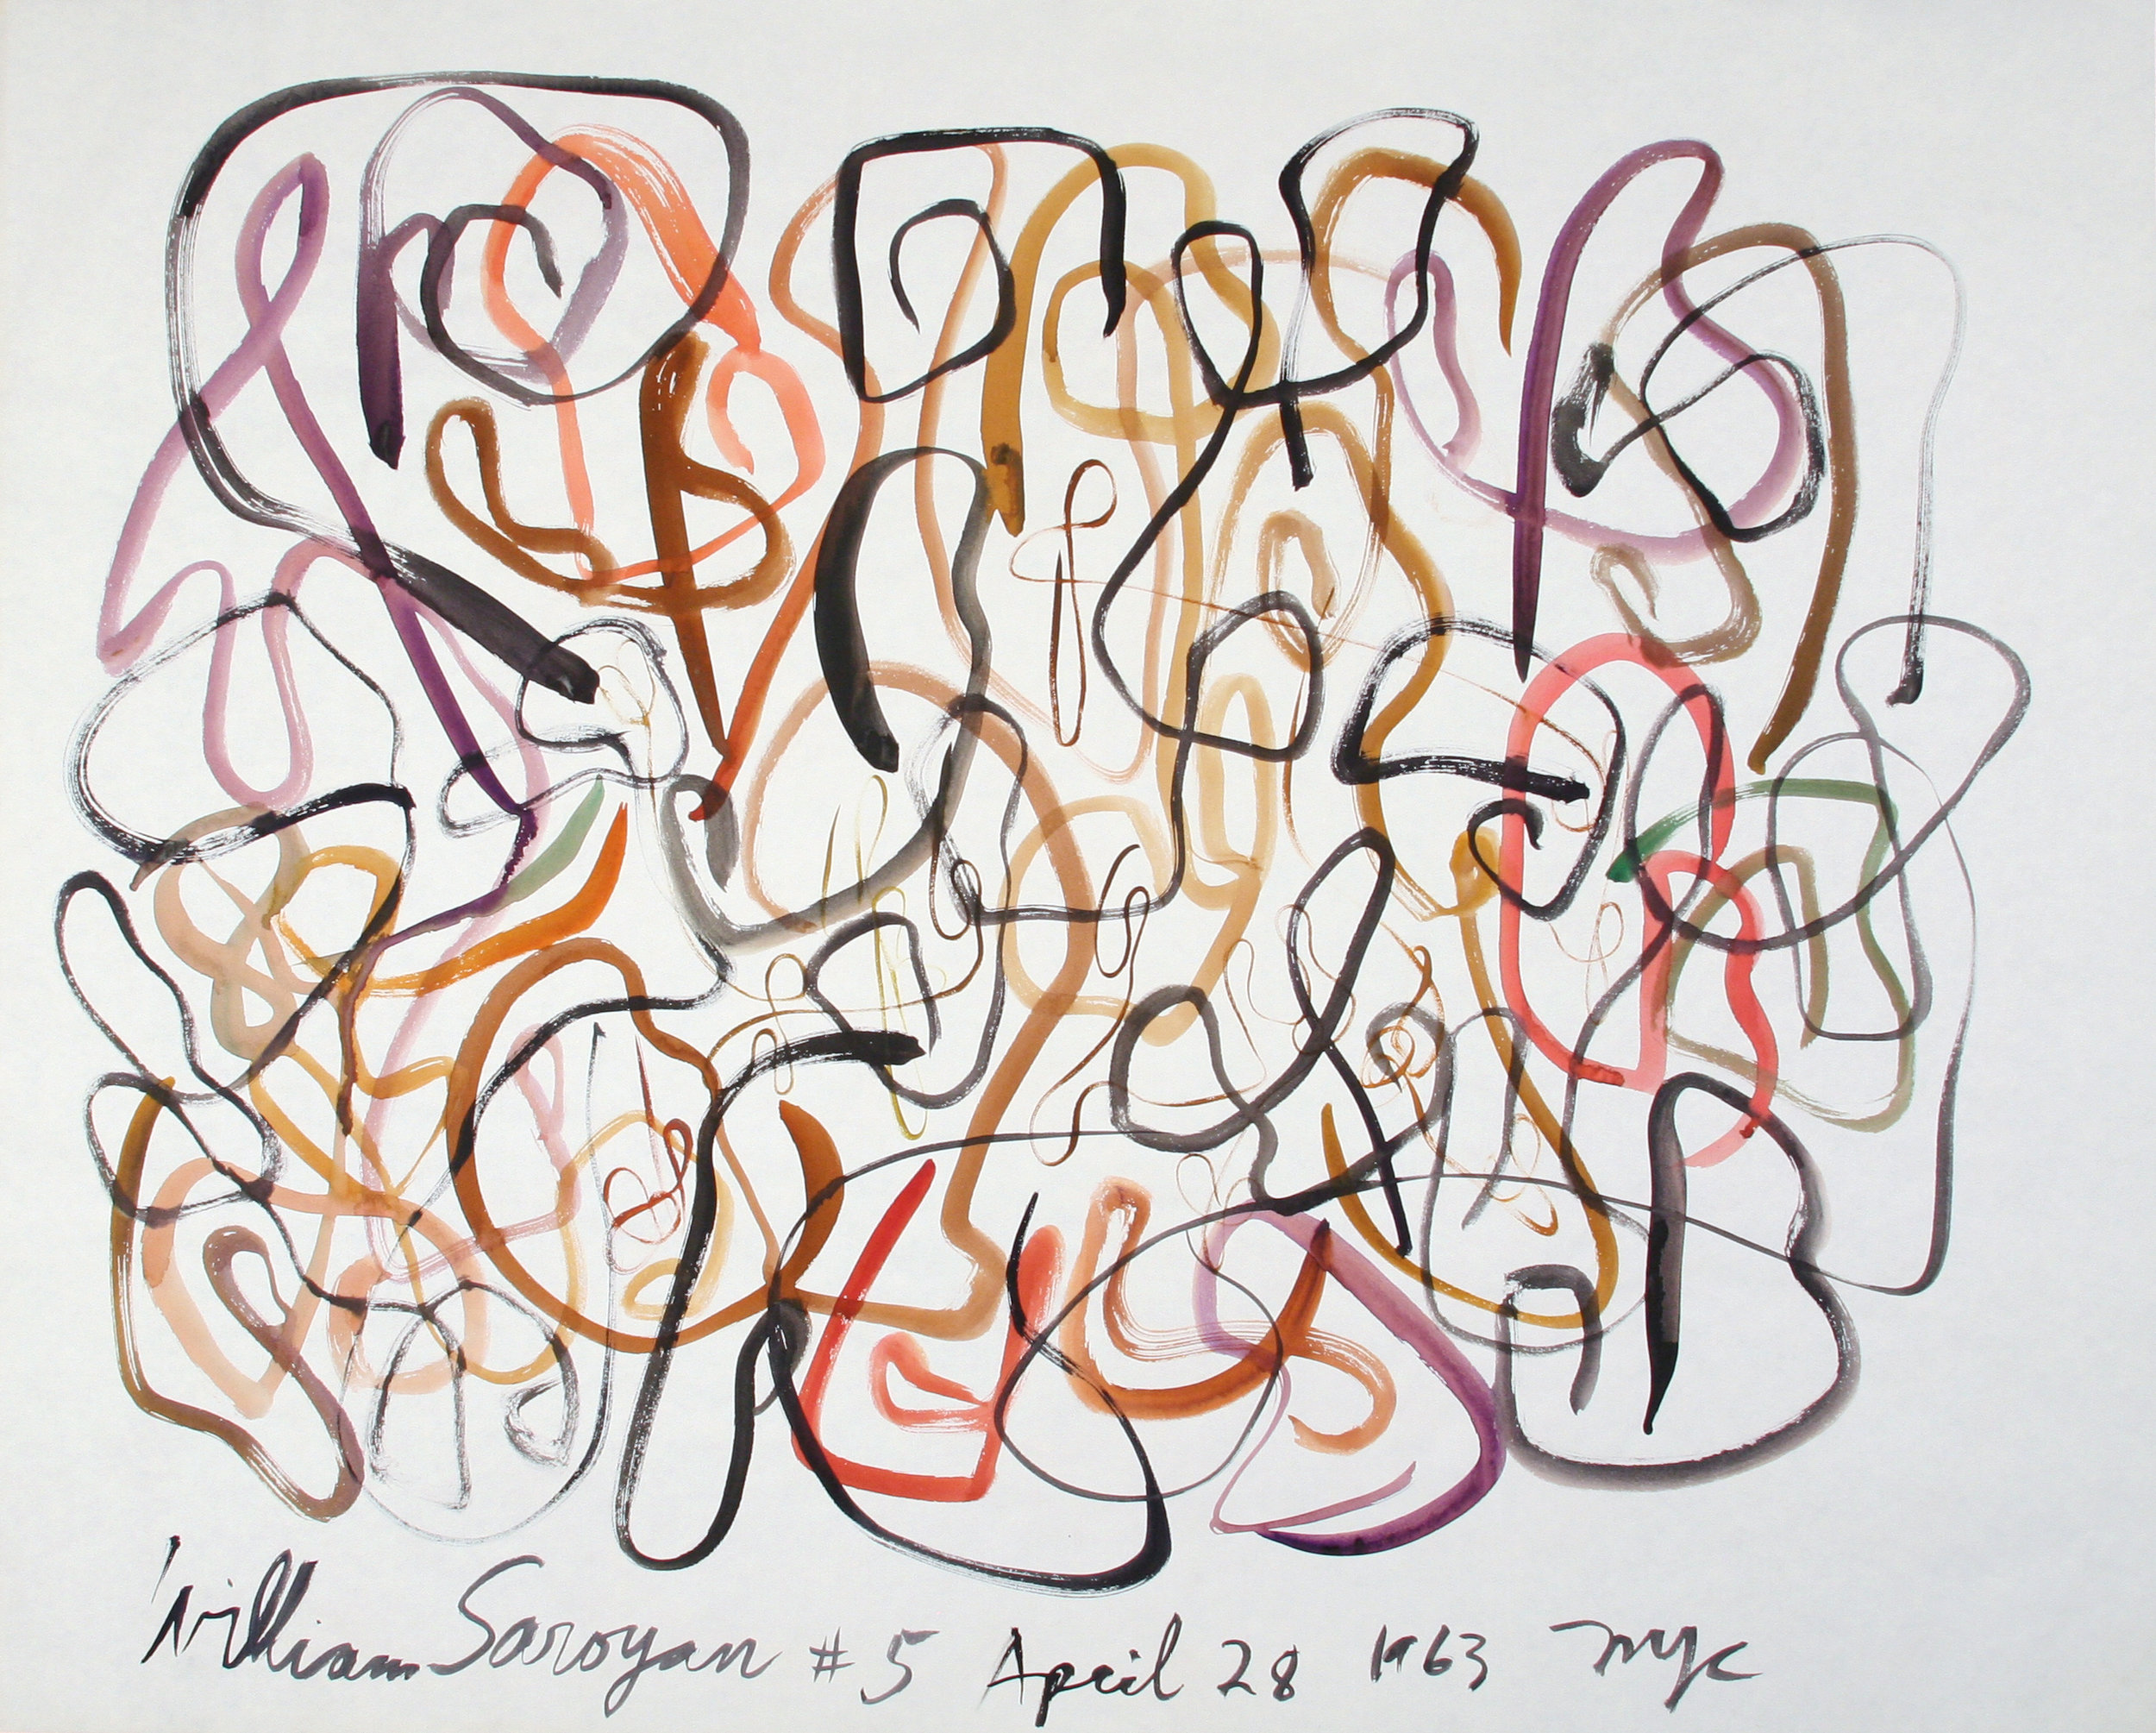 "William Saroyan #5 April 28, 1963 NYC  27.25"" x 34"" Watercolor on paper $11,000"